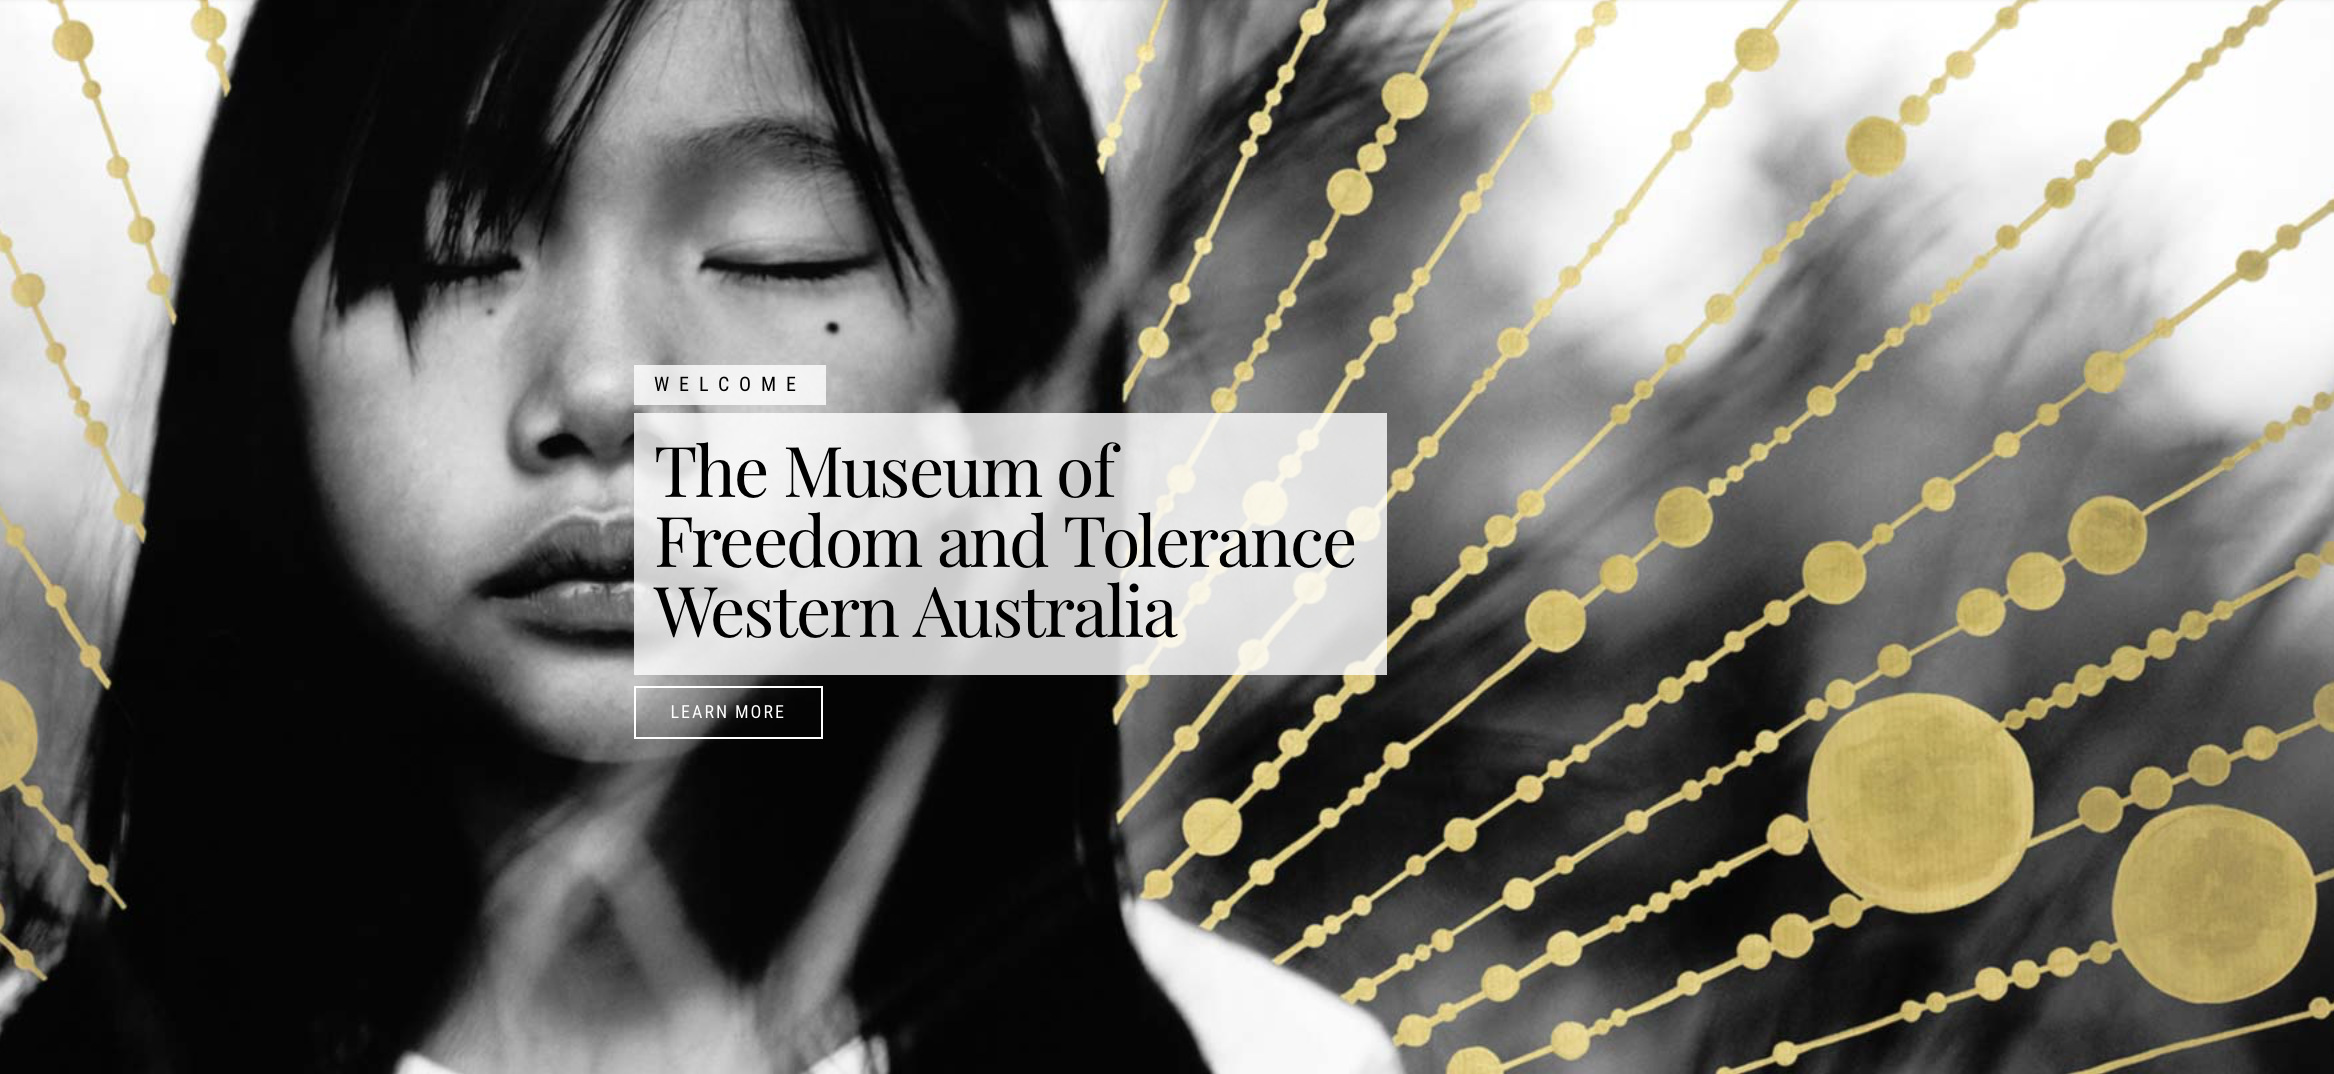 """Young girl's face with text """"The Museum of Freedom and Tolerance Western Australia"""""""